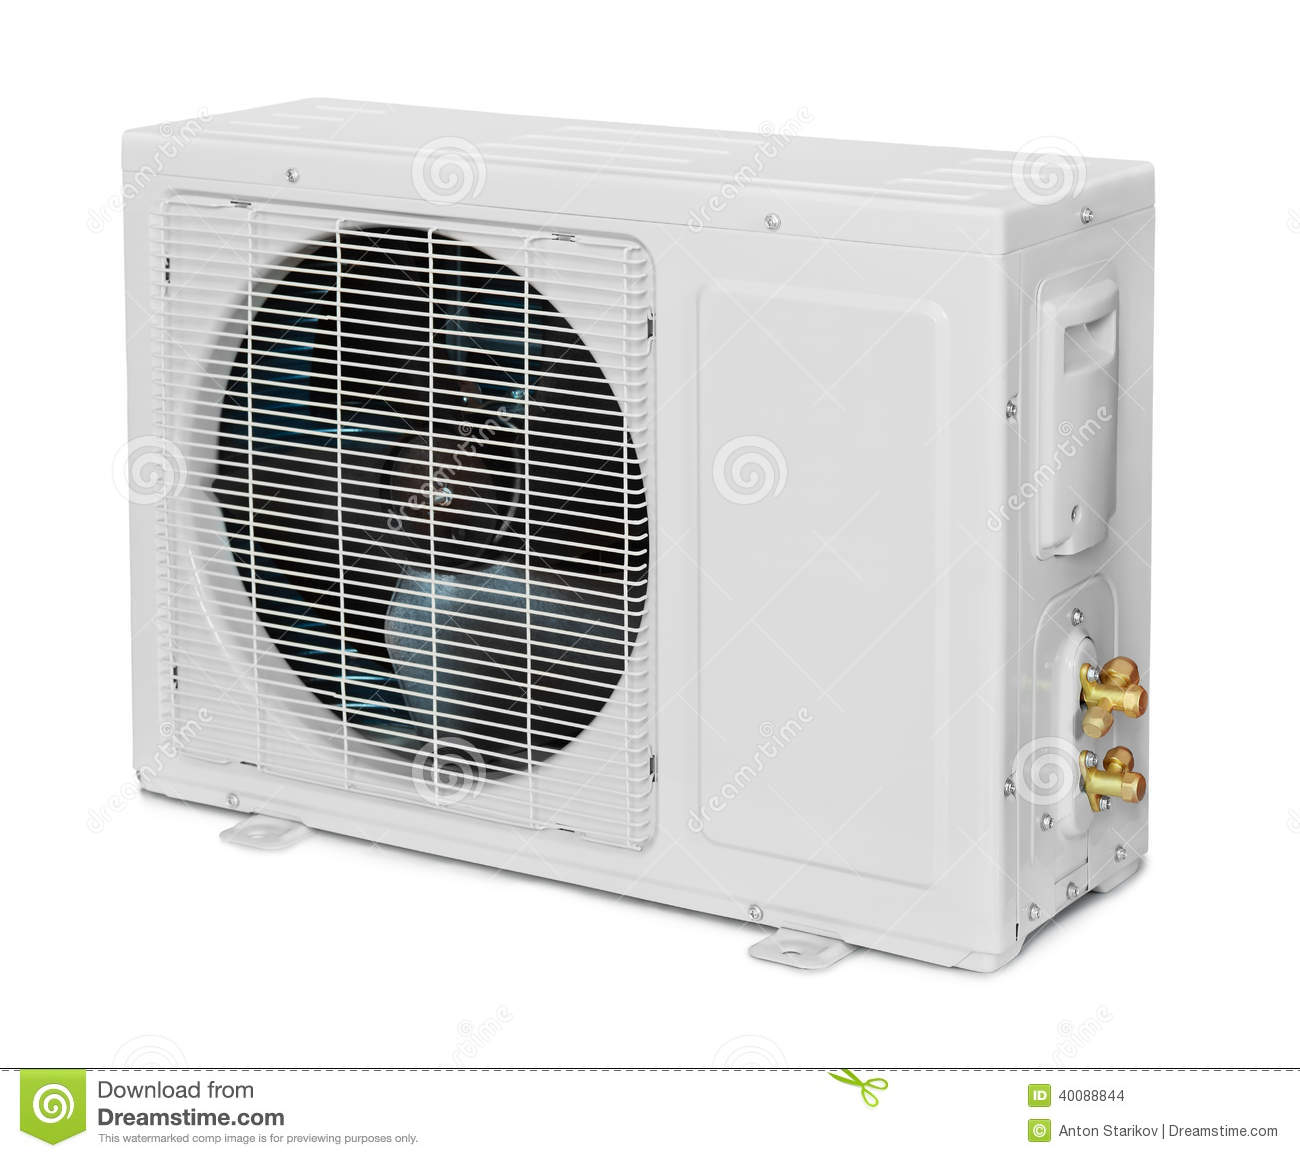 #83A427 Hvac Condenser Related Keywords & Suggestions Hvac  Best 2113 Condenser For Ac Unit photos with 1300x1158 px on helpvideos.info - Air Conditioners, Air Coolers and more